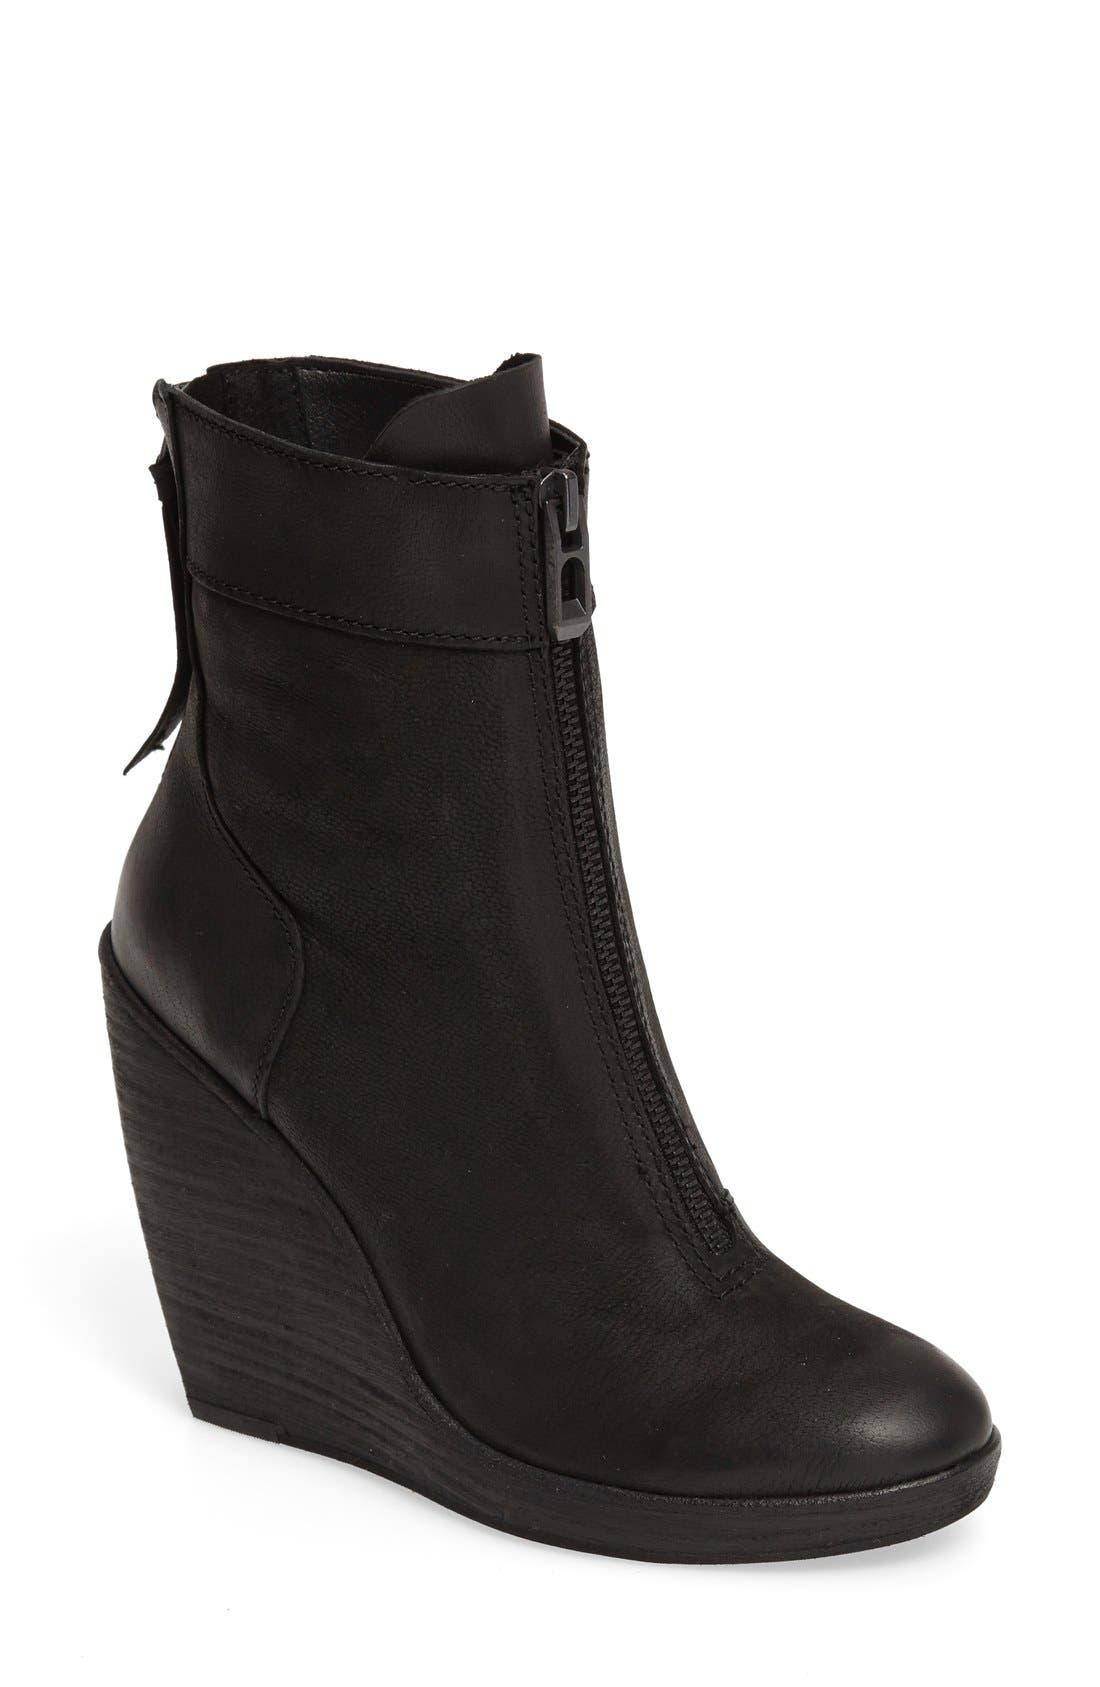 Alternate Image 1 Selected - Dolce Vita Caden Zip Wedge Bootie (Women)